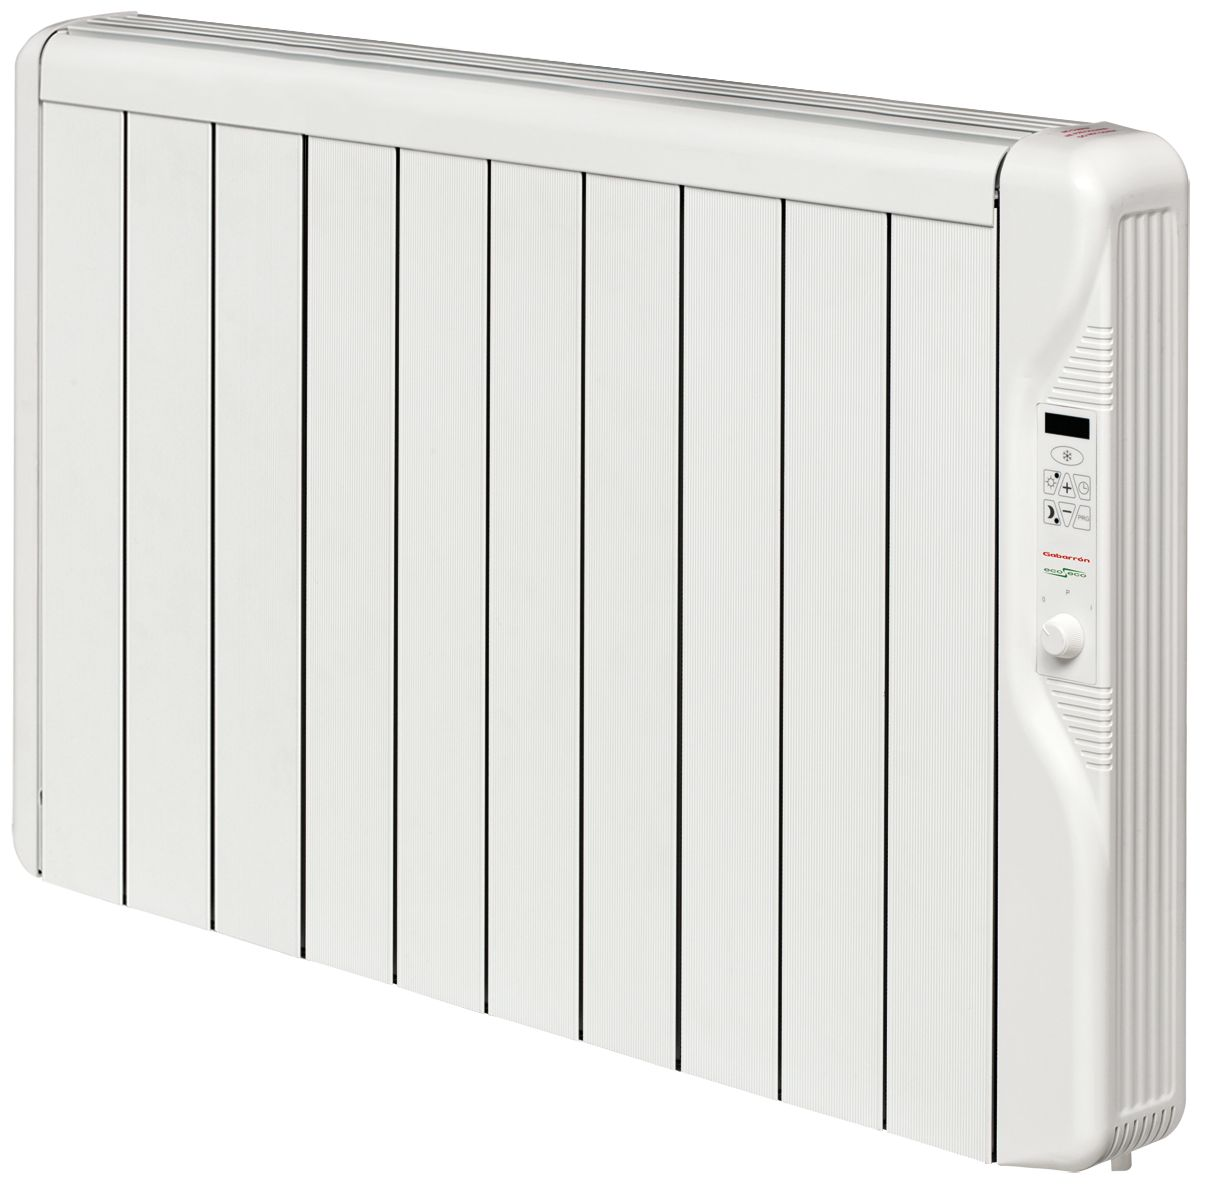 Electric Heaters & Fan Convectors